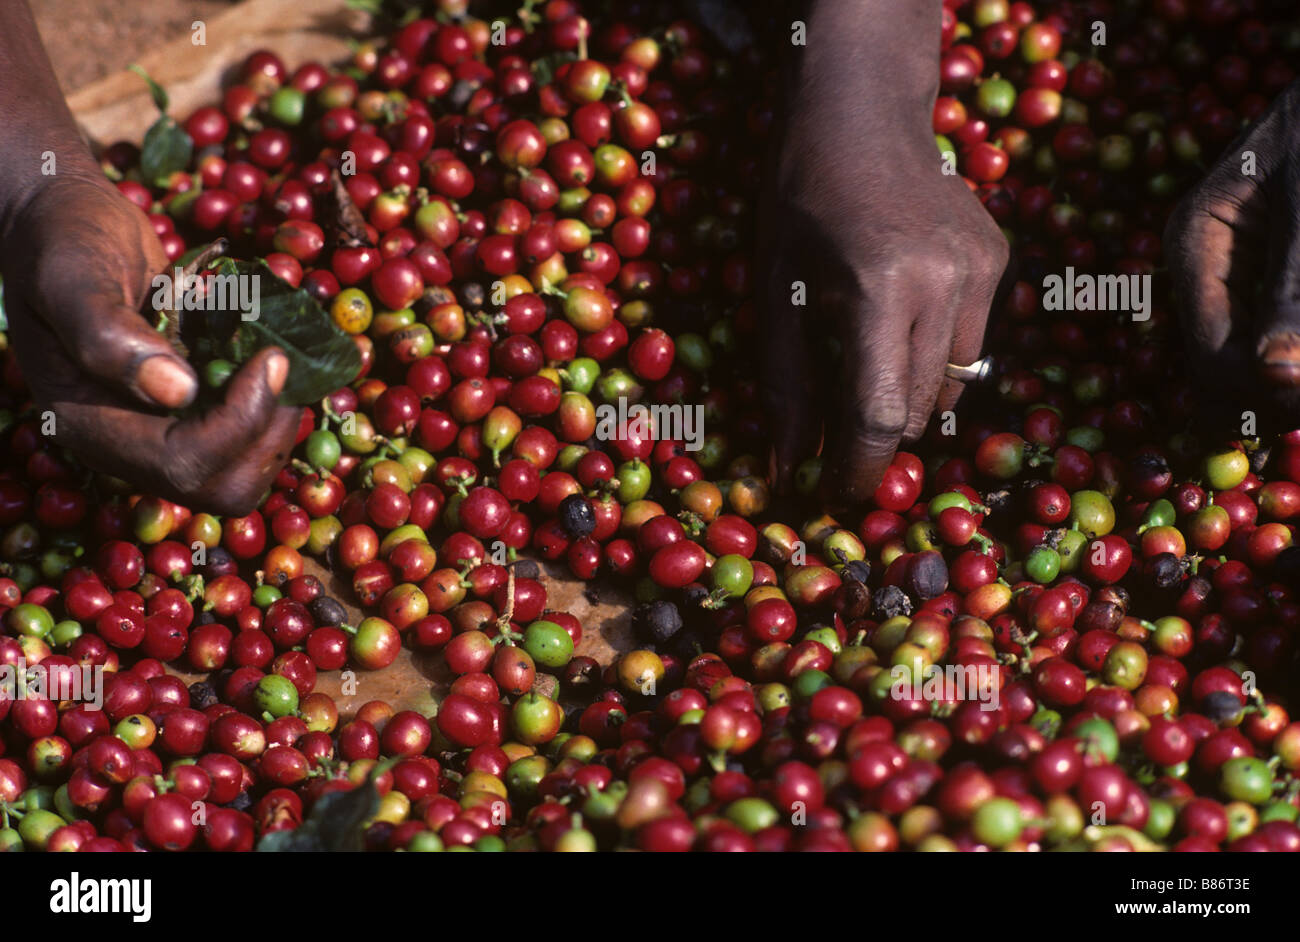 Sorting arabica coffee cherries after harvest before pulping to extract beans - Stock Image